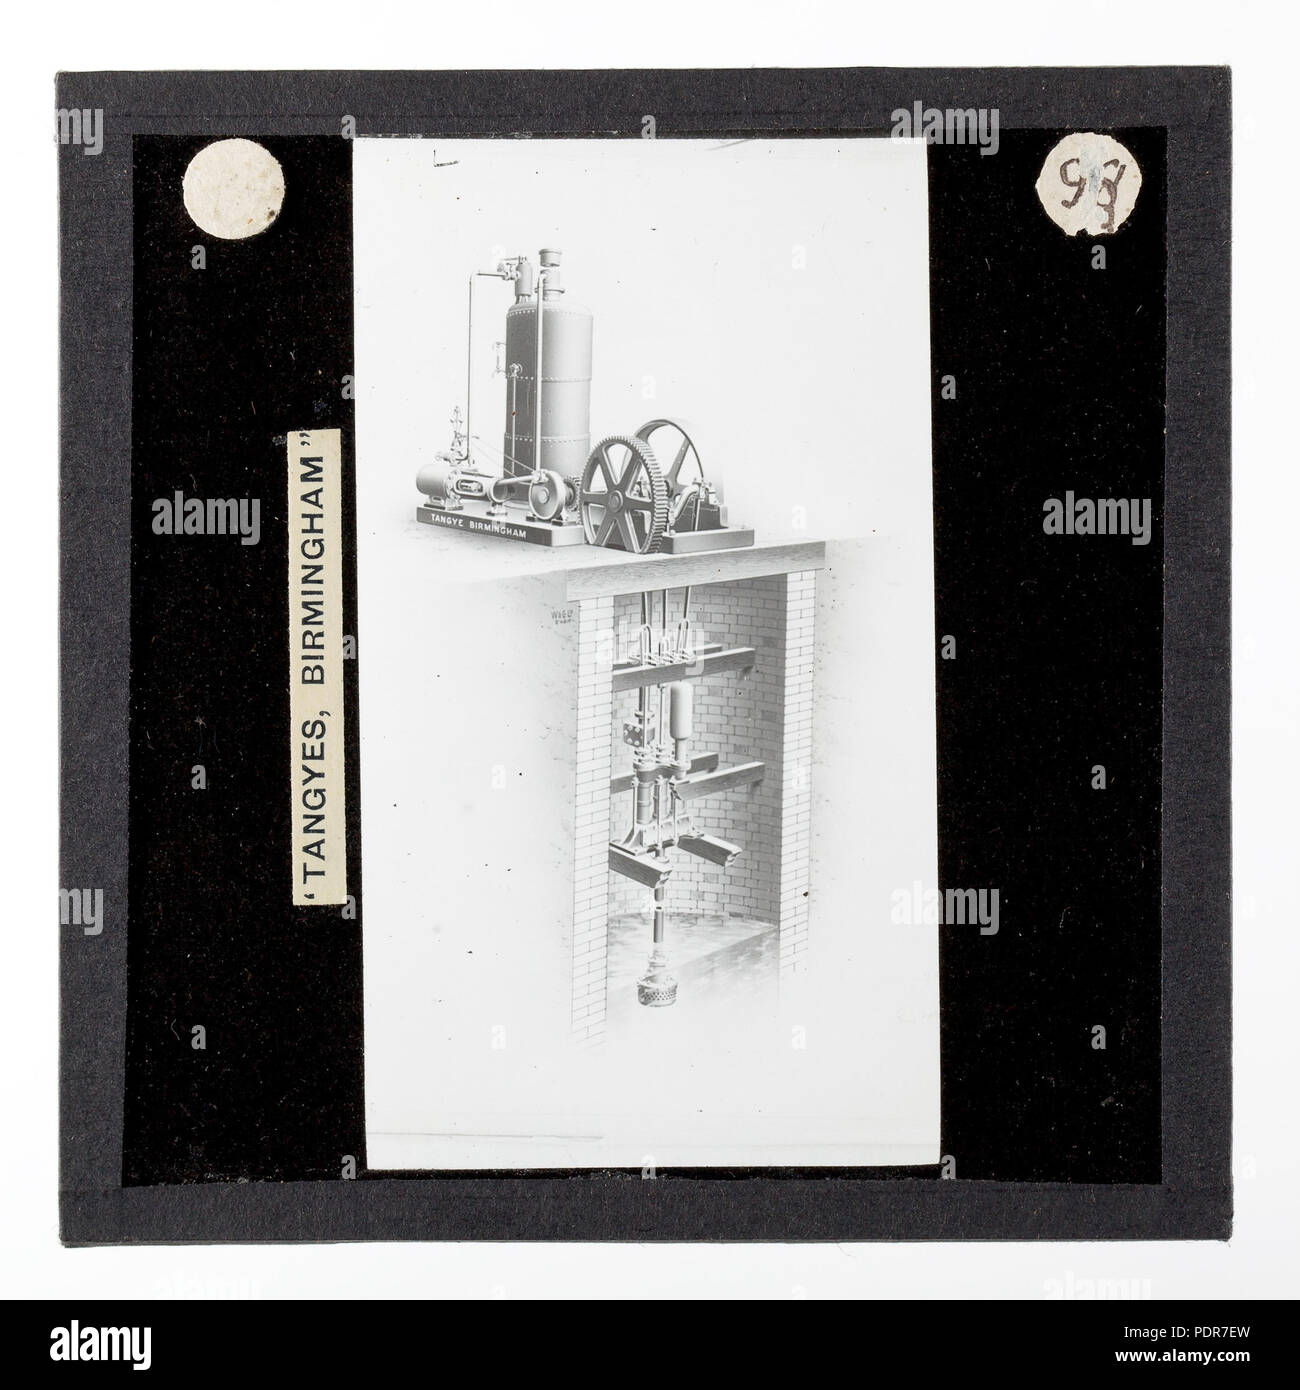 77 Lantern Slide - Tangyes Ltd, Horizontal Steam Engine